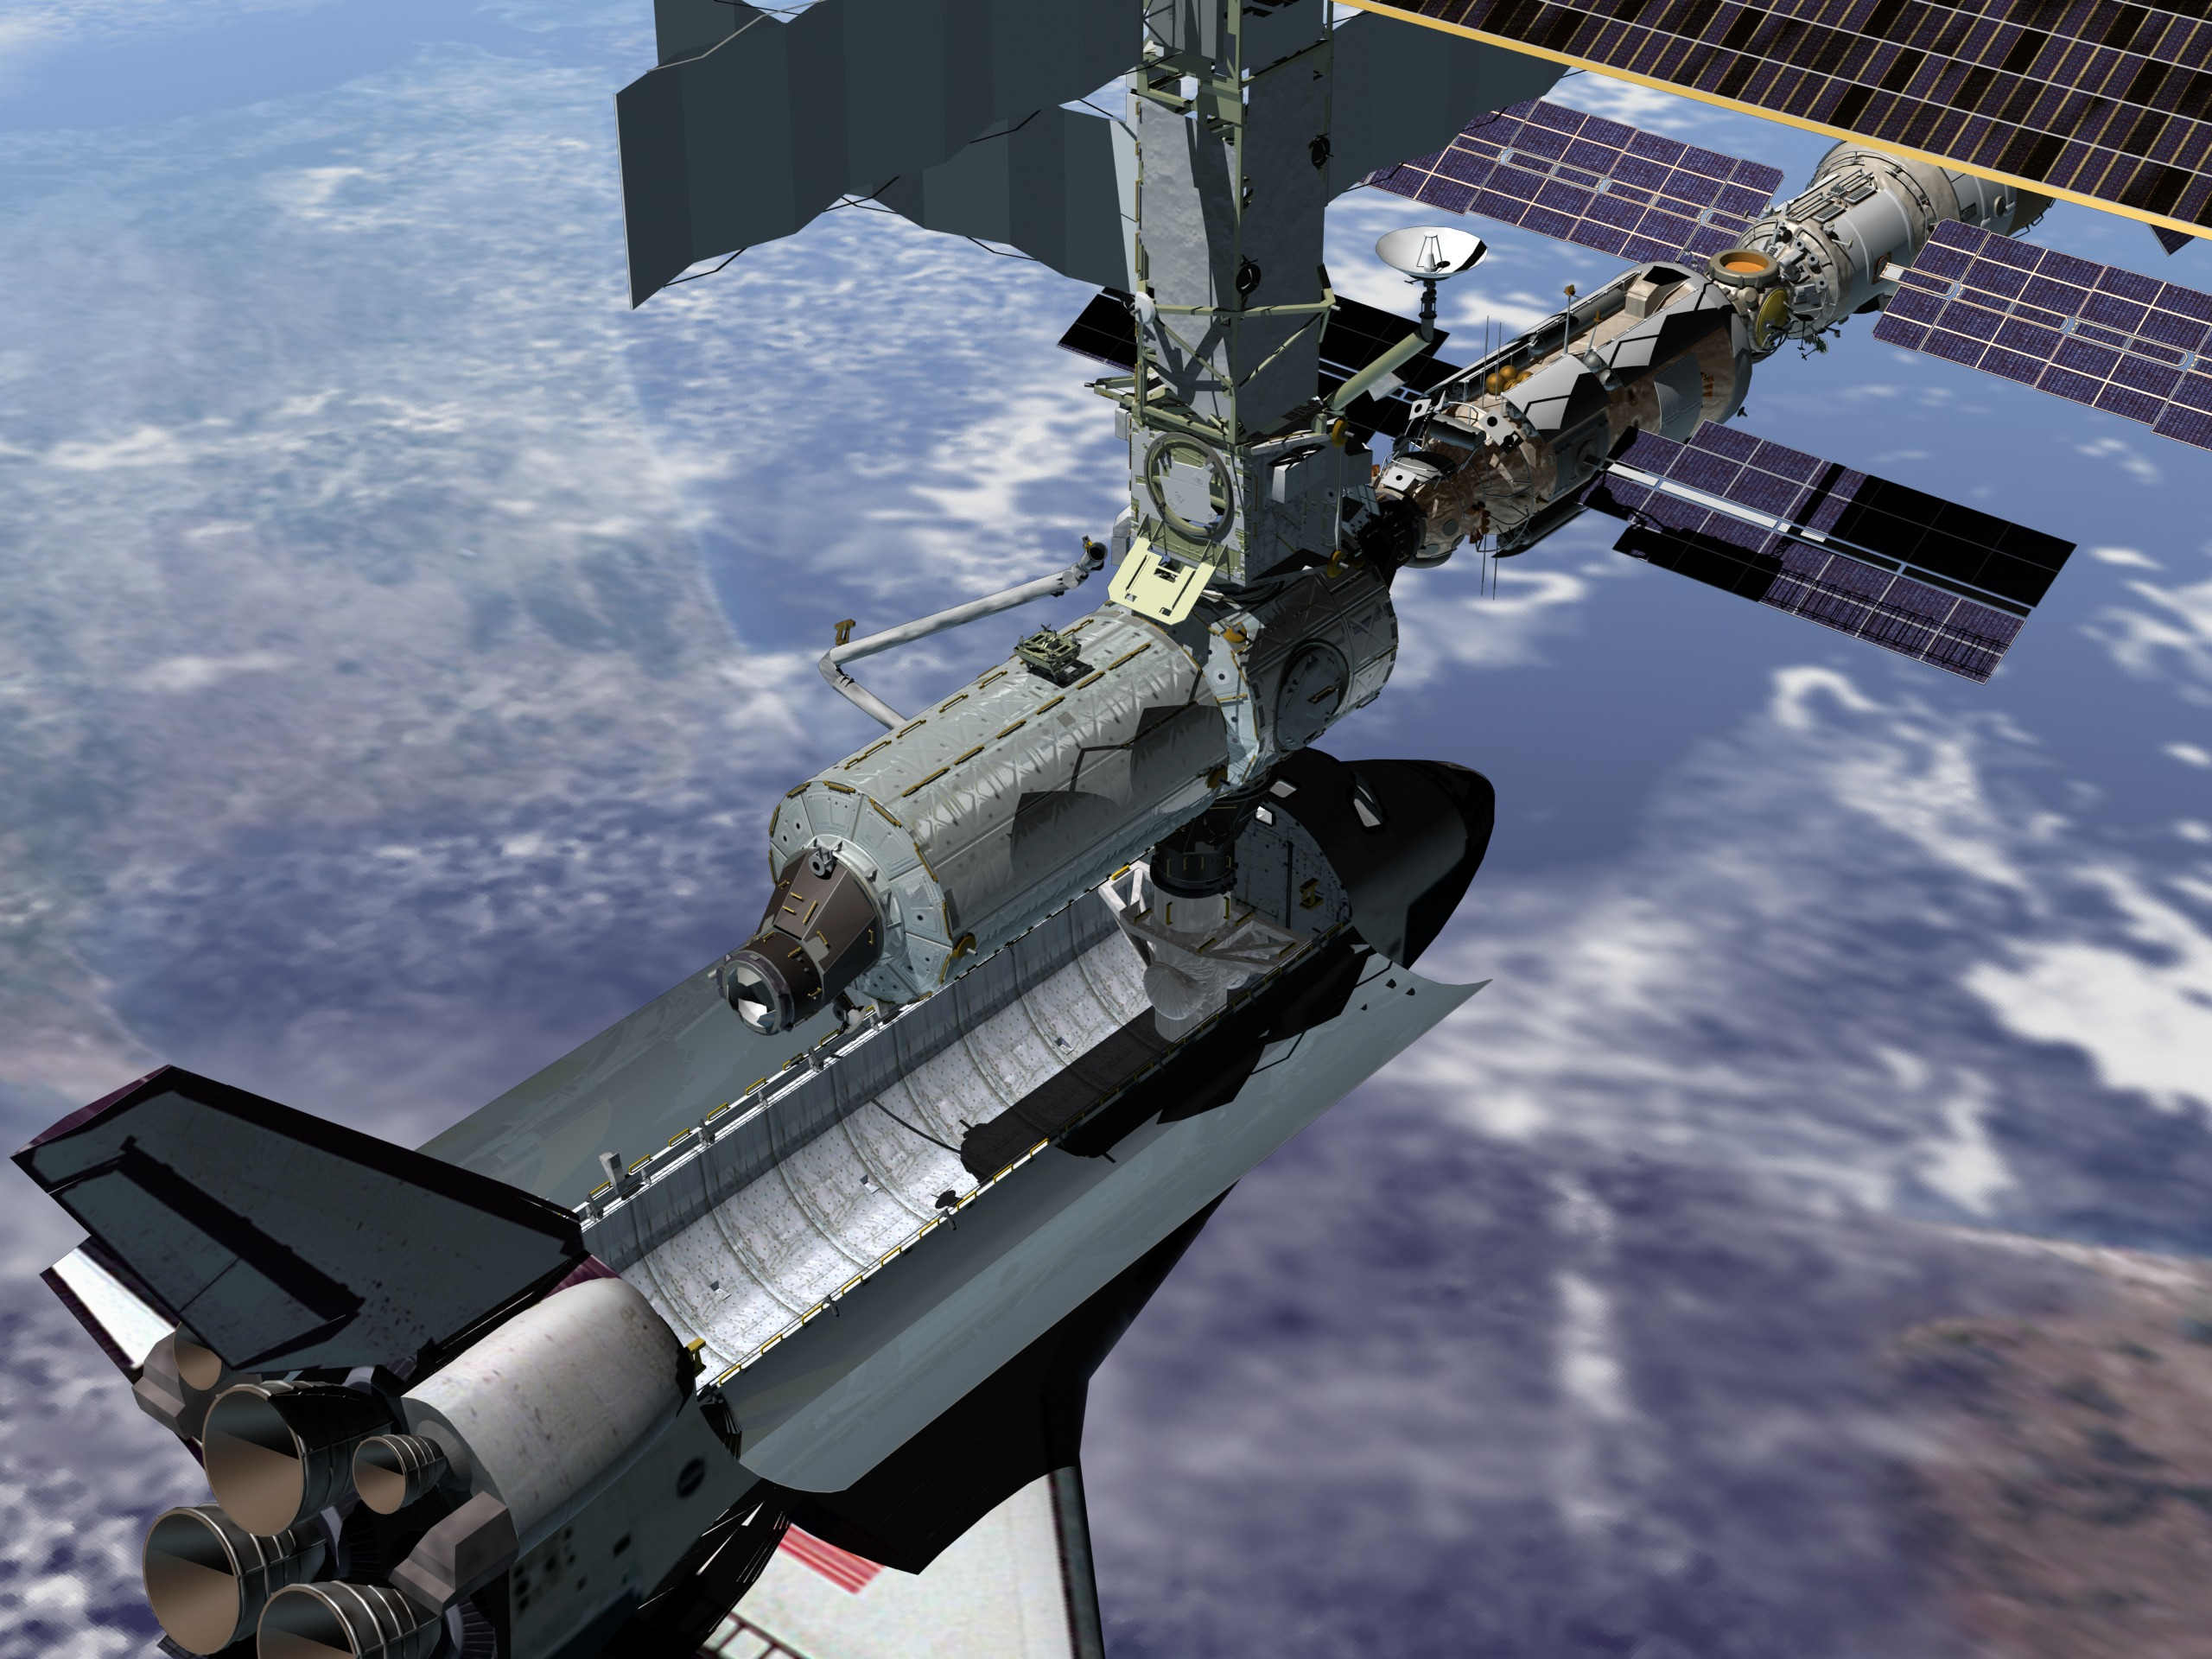 an analysis of the international space station Space software tool to evaluate the overall performance of the electric power system (eps) on the international space station (iss), nasa's glenn research center is using the system power analysis for capability evaluation (space) software program.